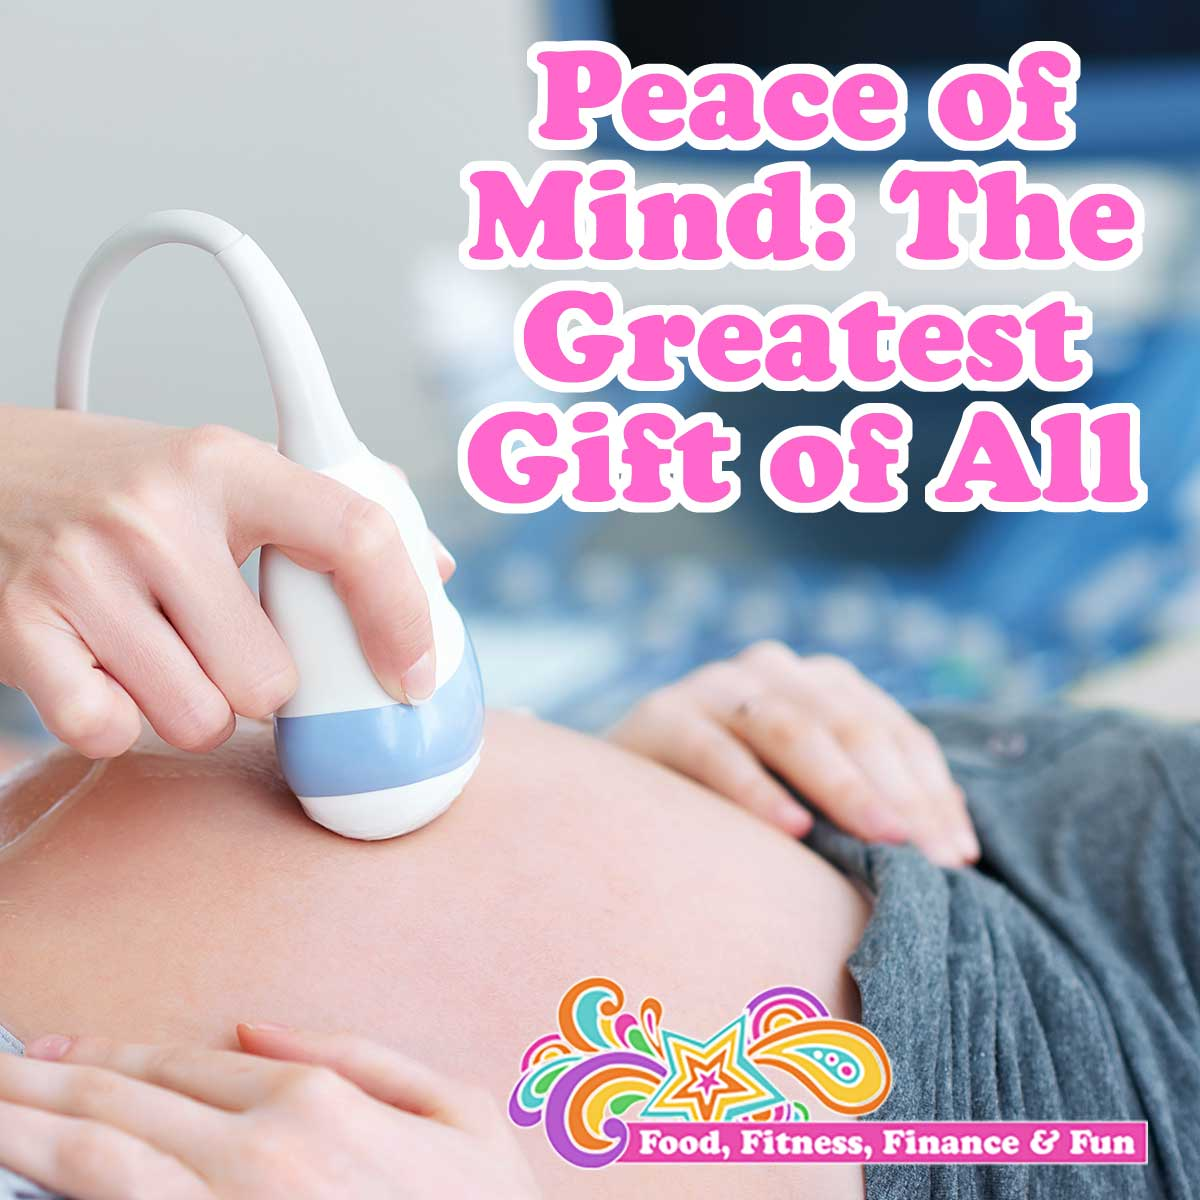 Peace of Mind: The Greatest Gift of All